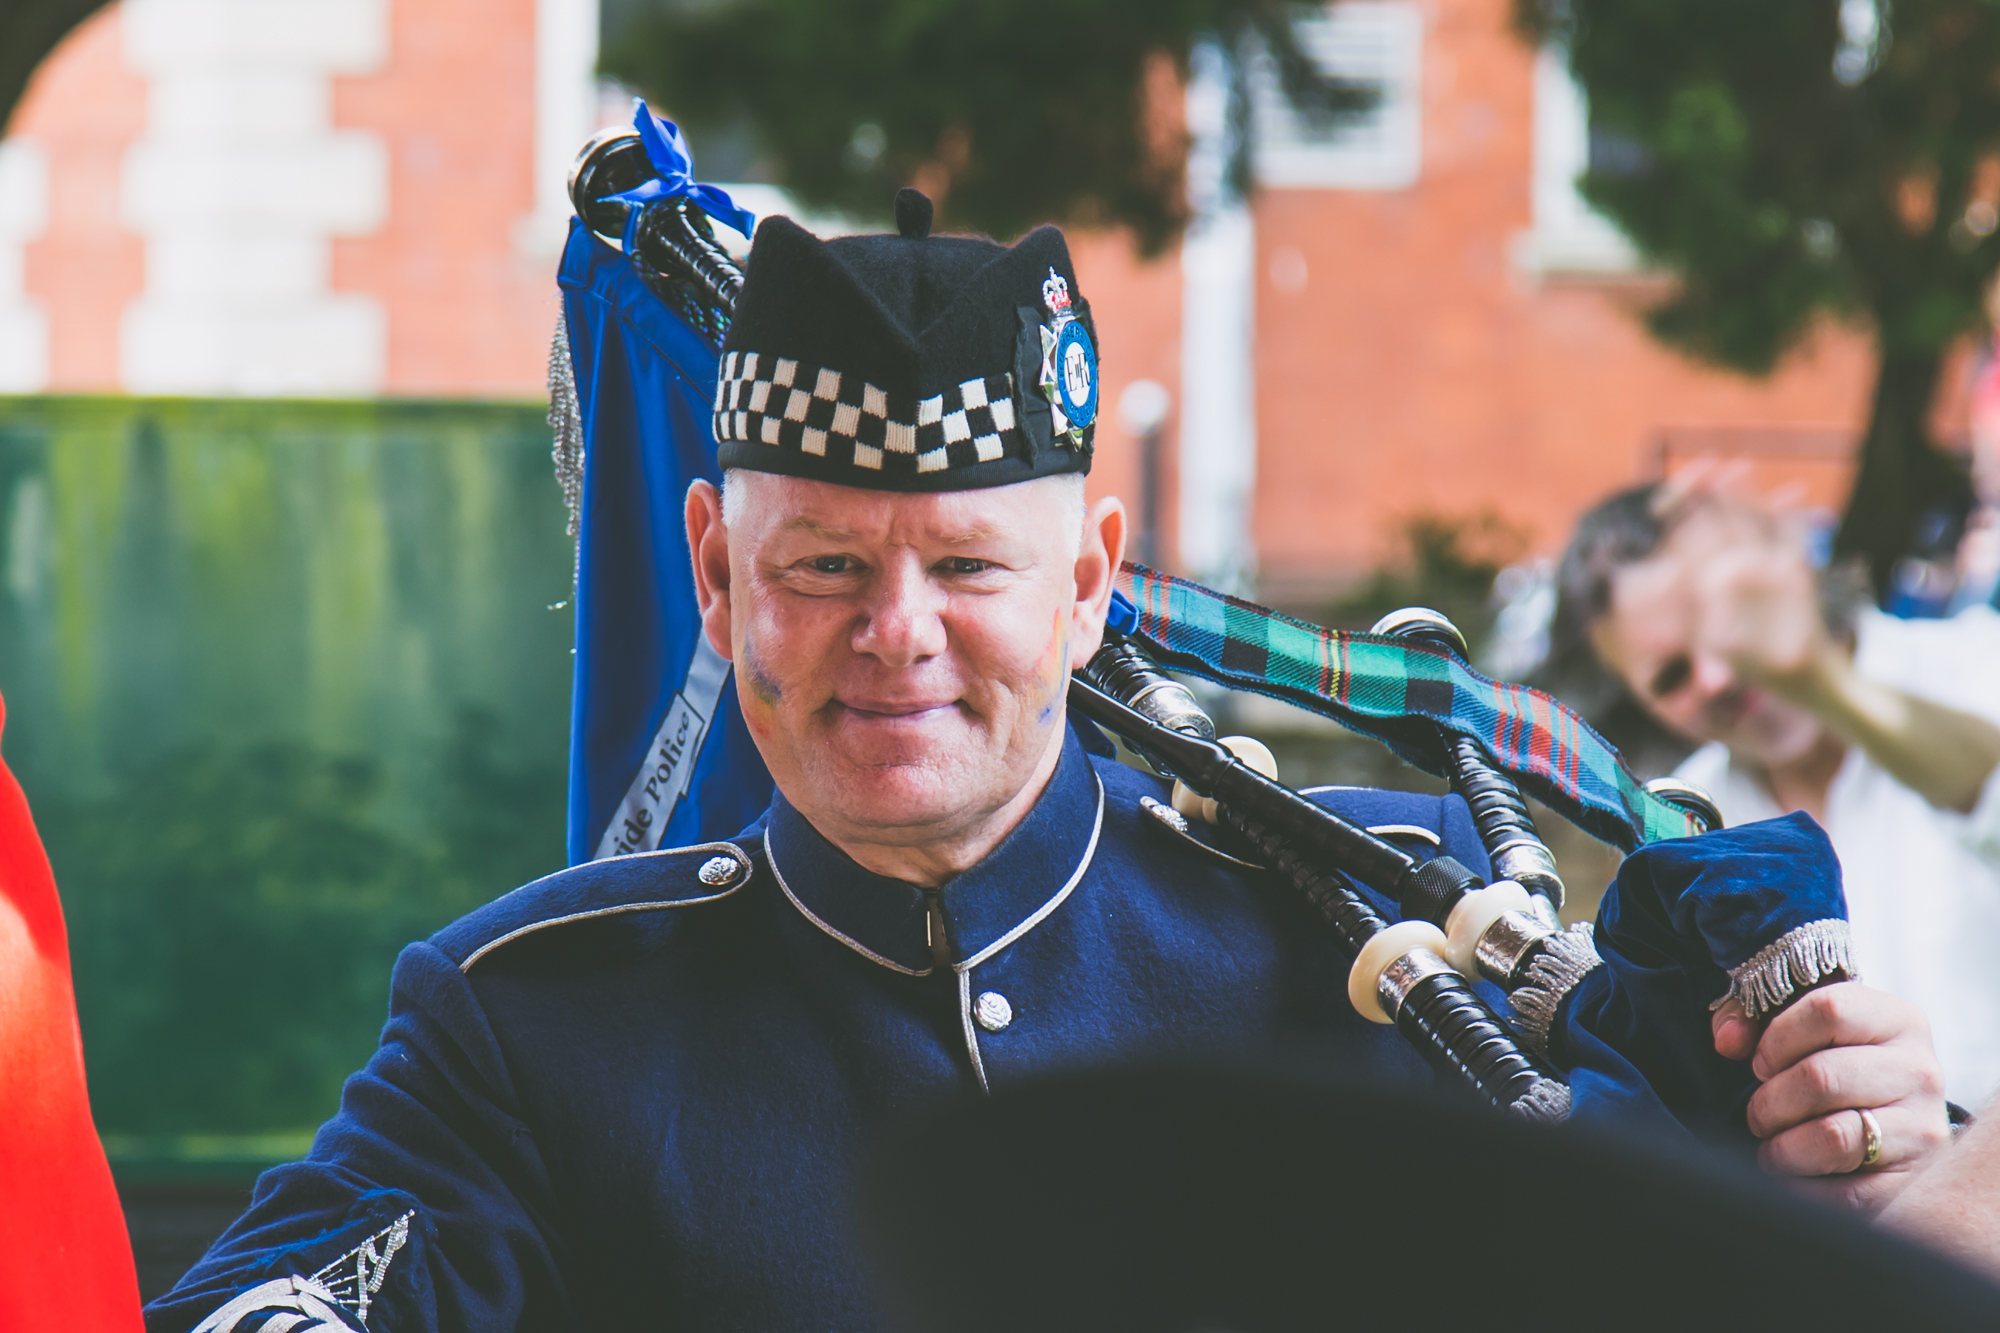 Bagpipe player portrait